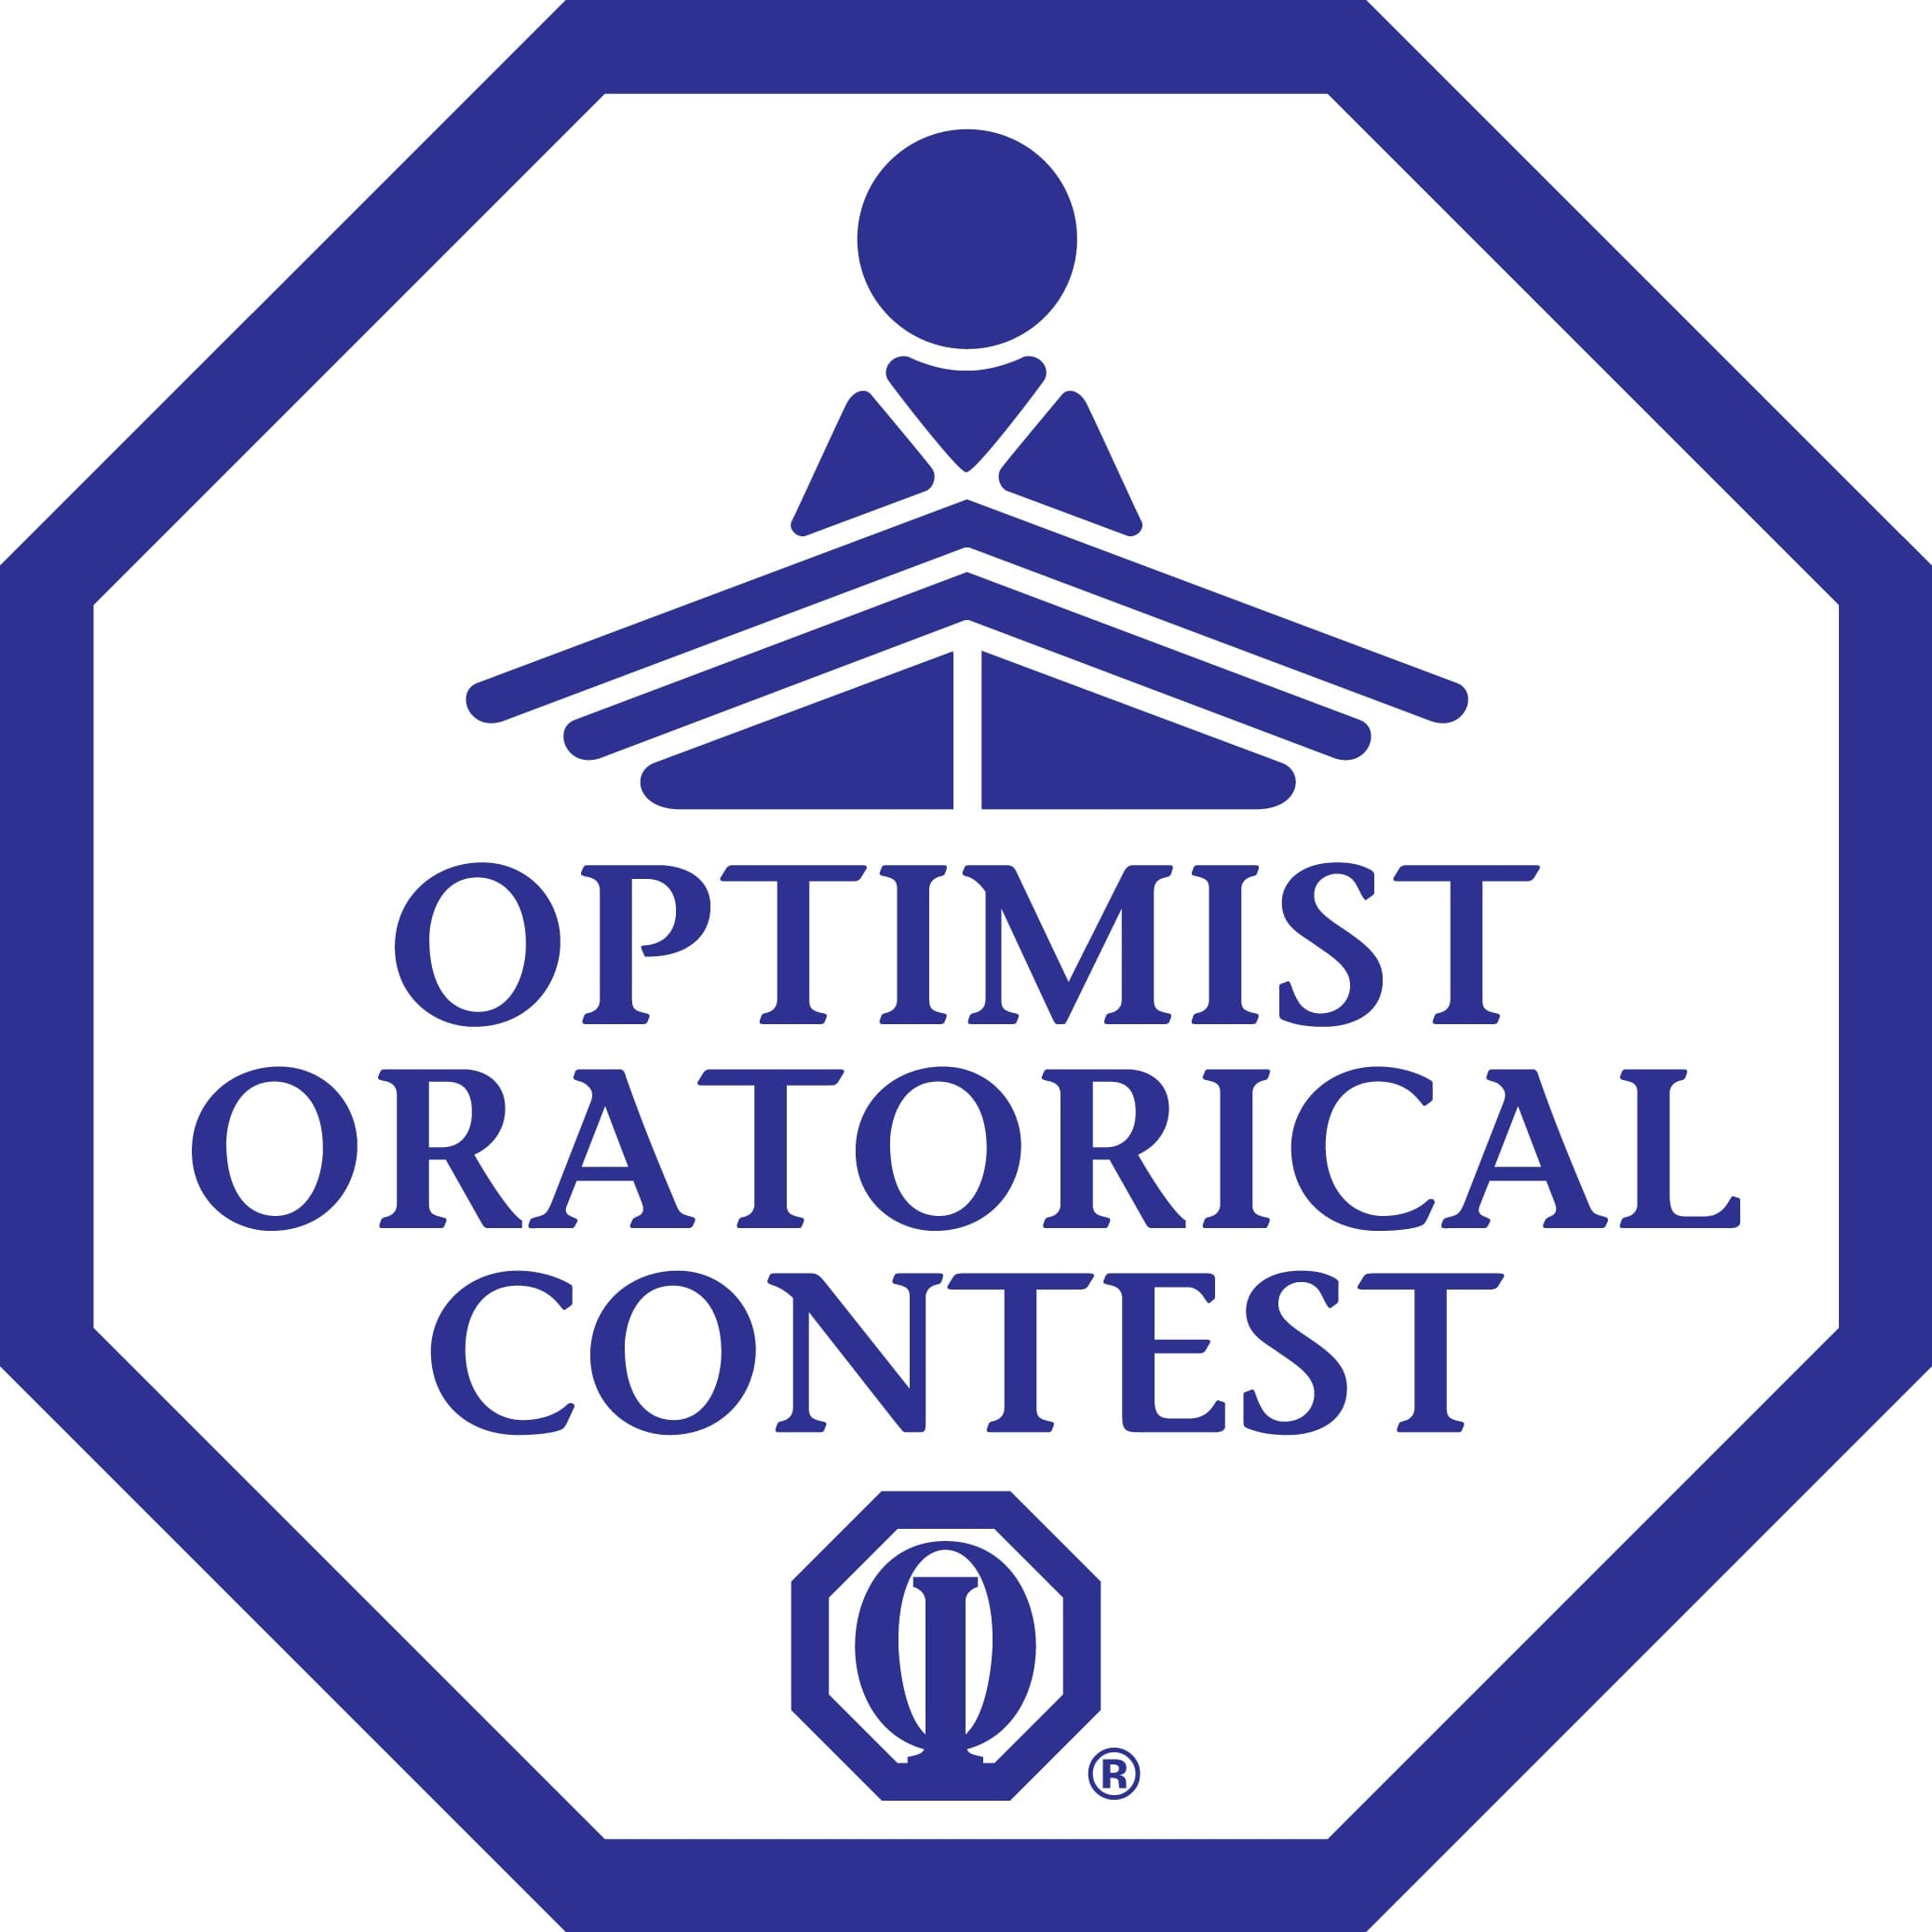 optimist club essay contest winner The oswegoland optimist club is excited to announce our annual essay contest the entry form provides all the details of the essay and who to submit it to, which is due february 1, 2018.